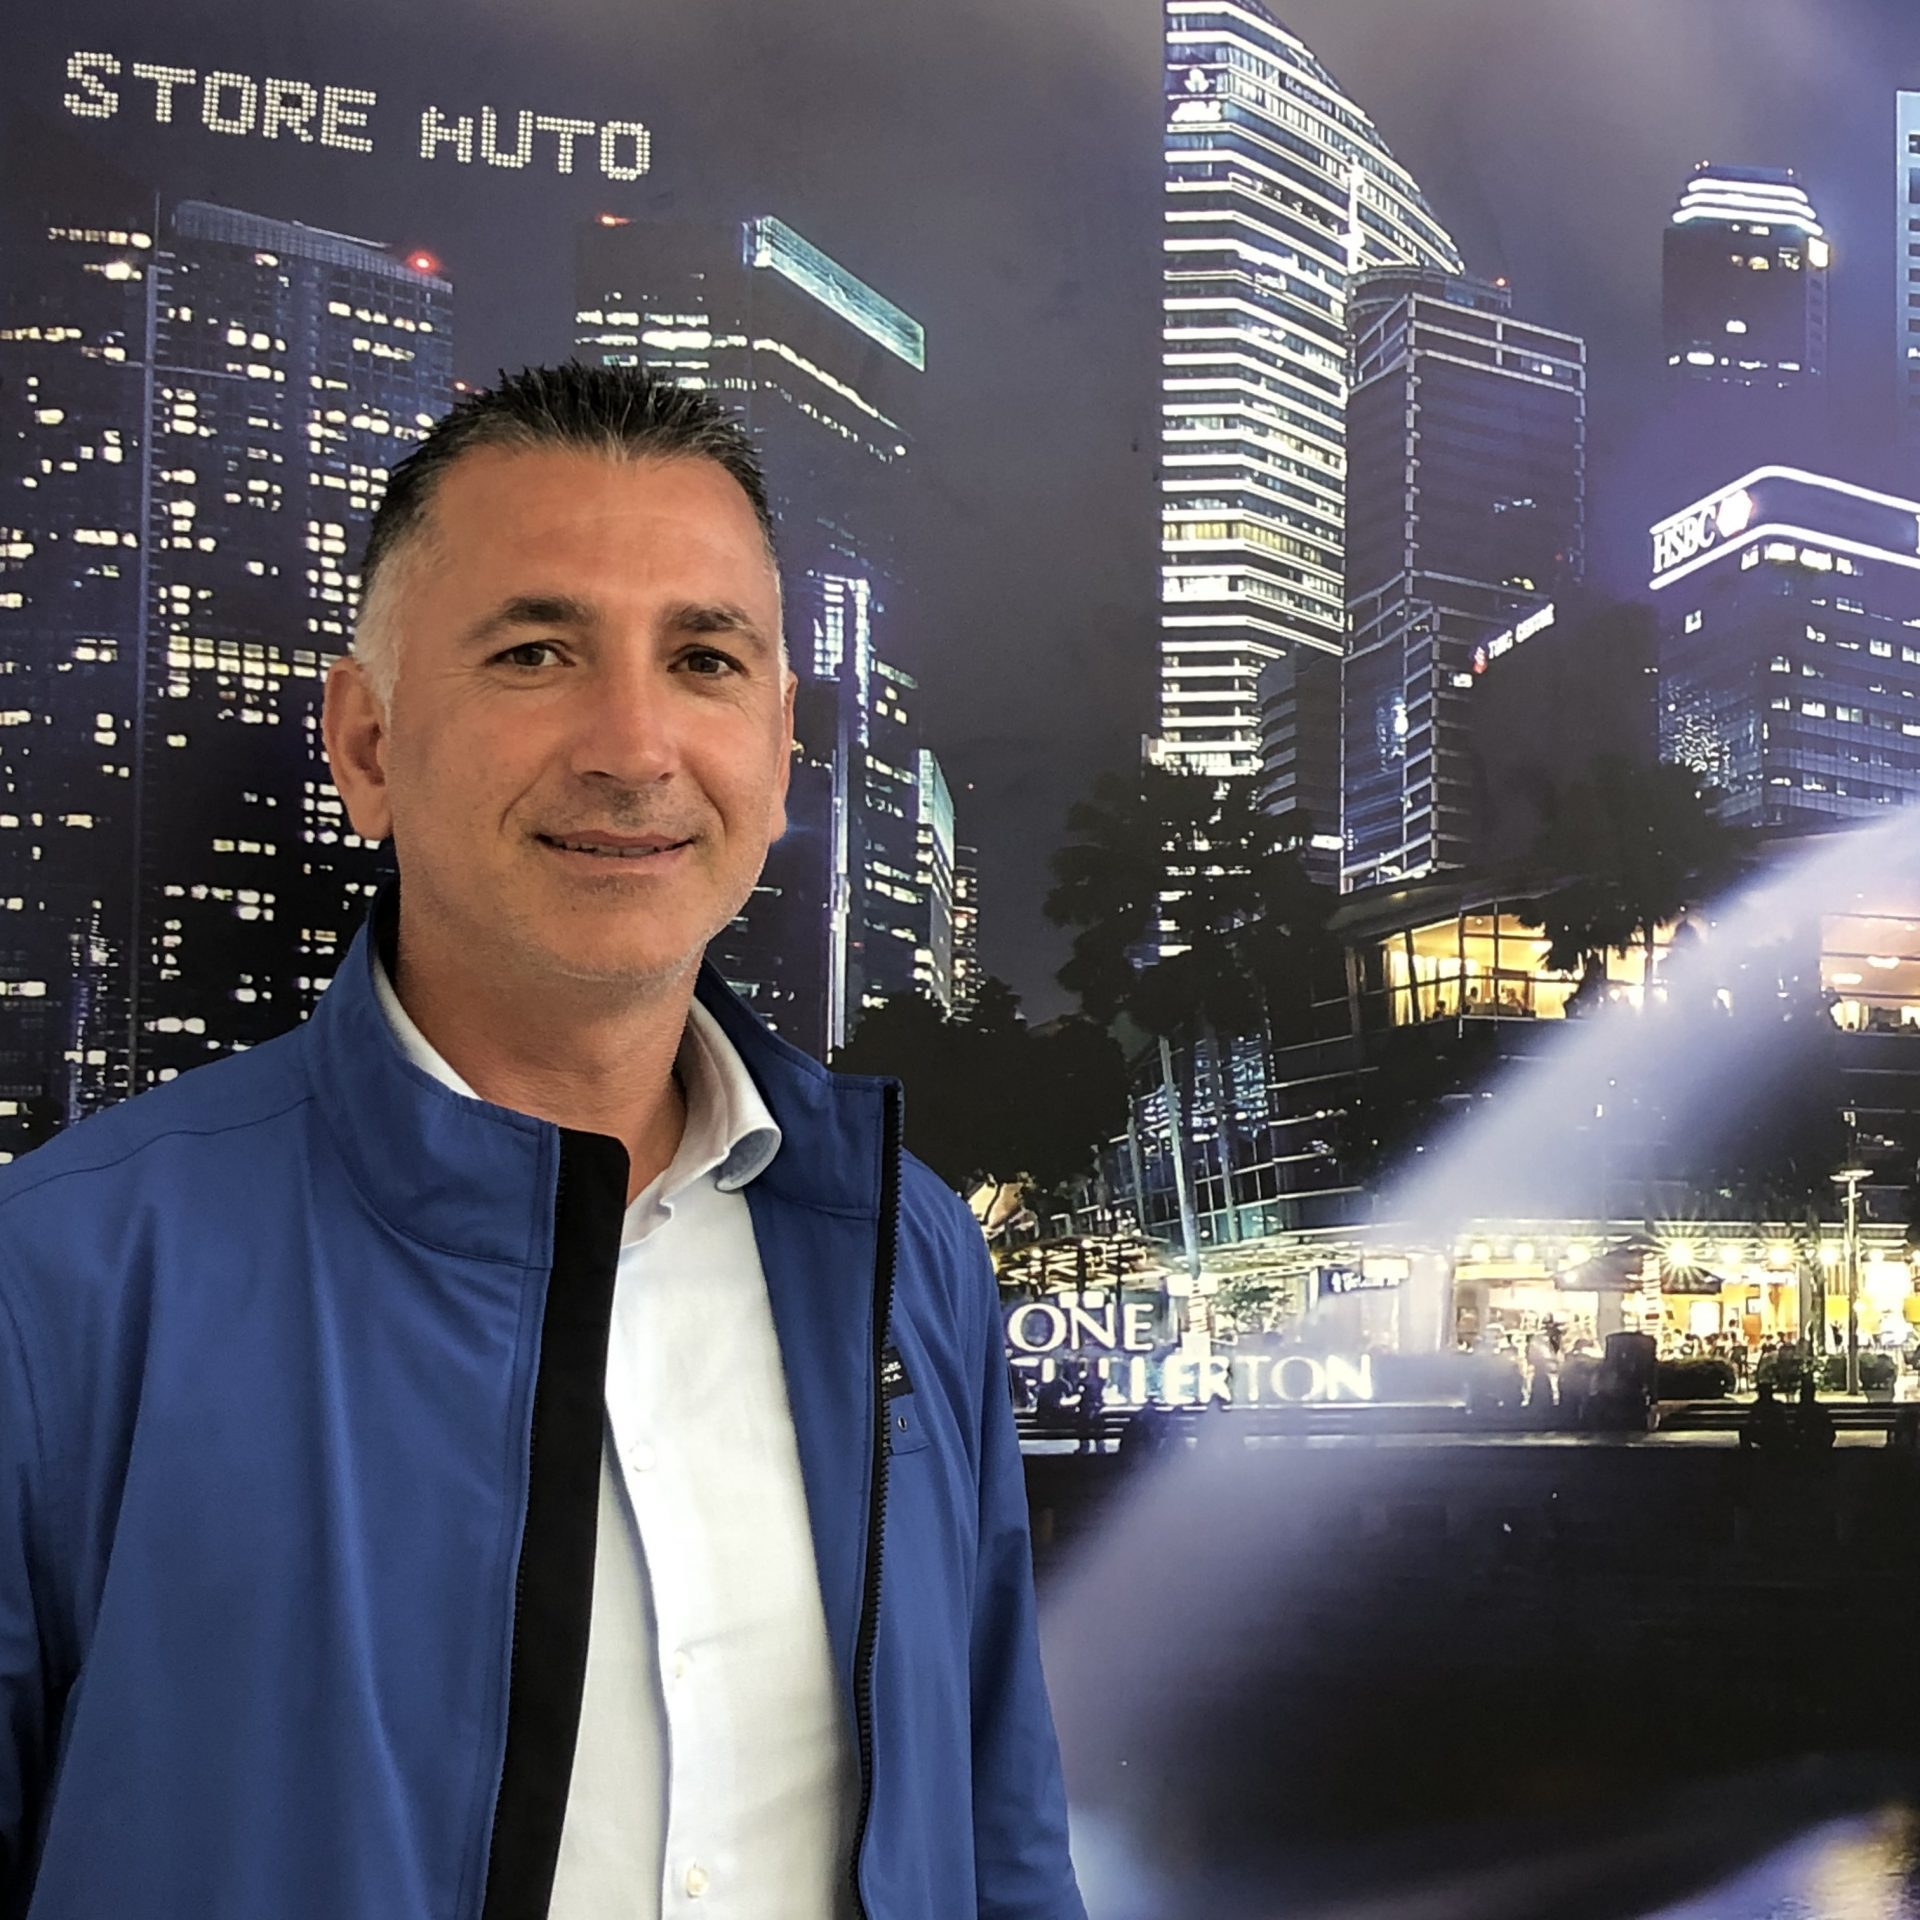 ANDREA PUCE SALES MANAGER - REPONSABILE VENDITE